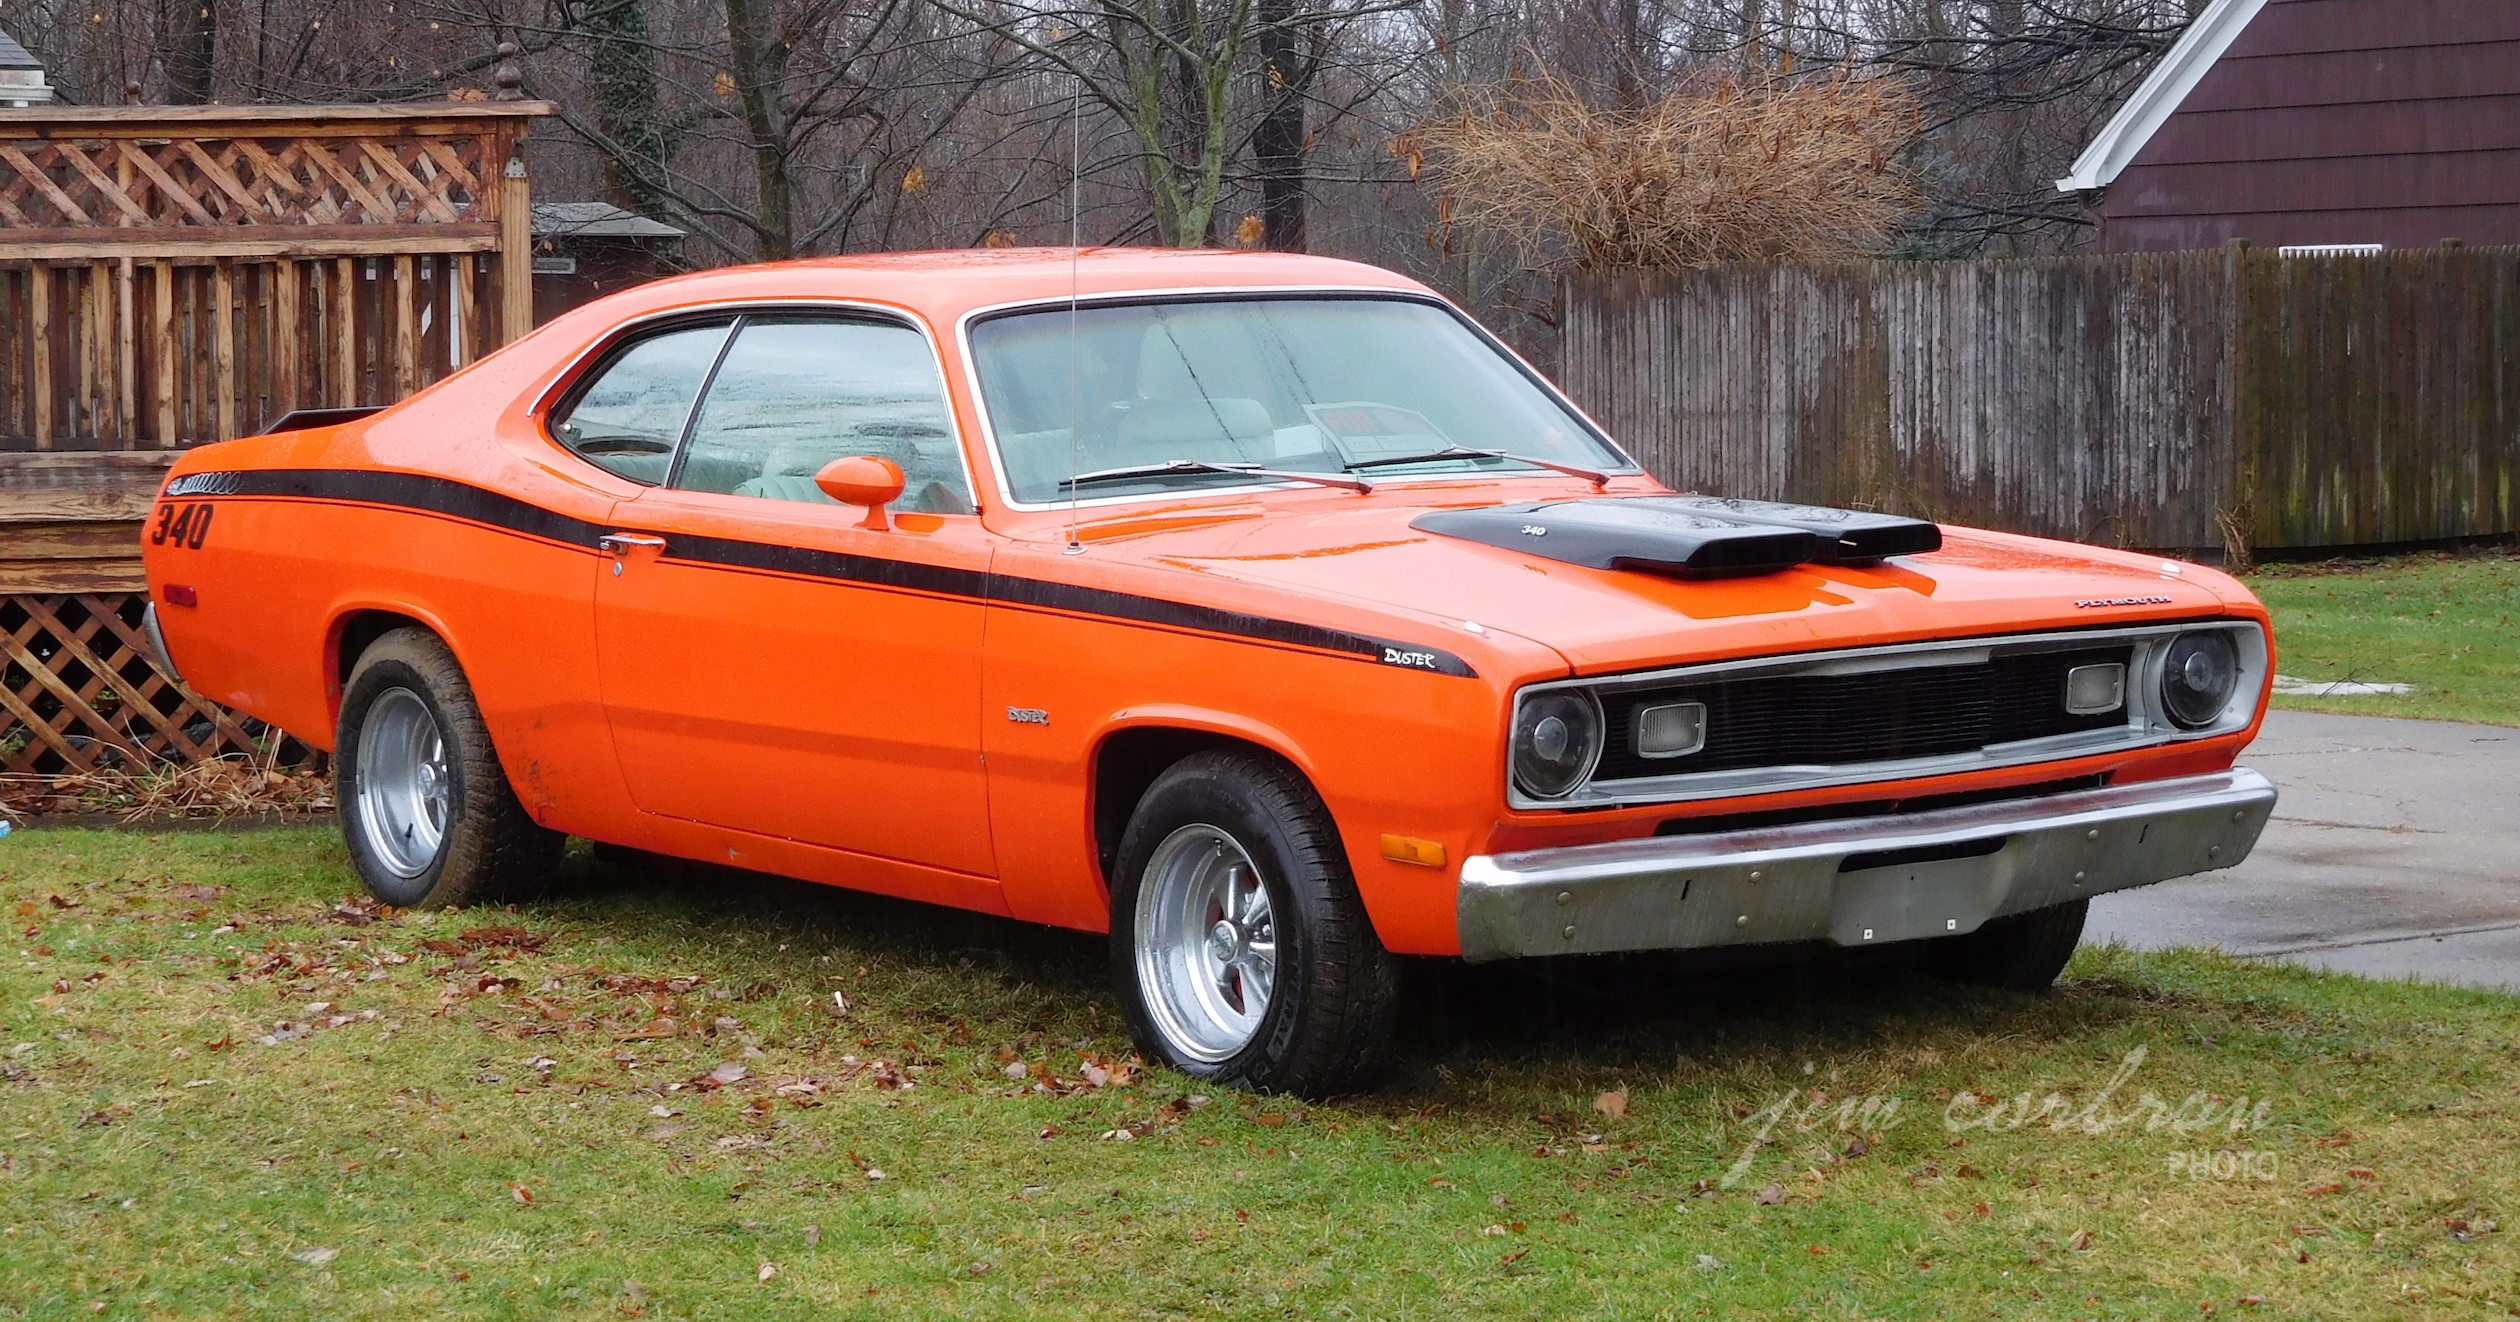 Image result for plymouth duster